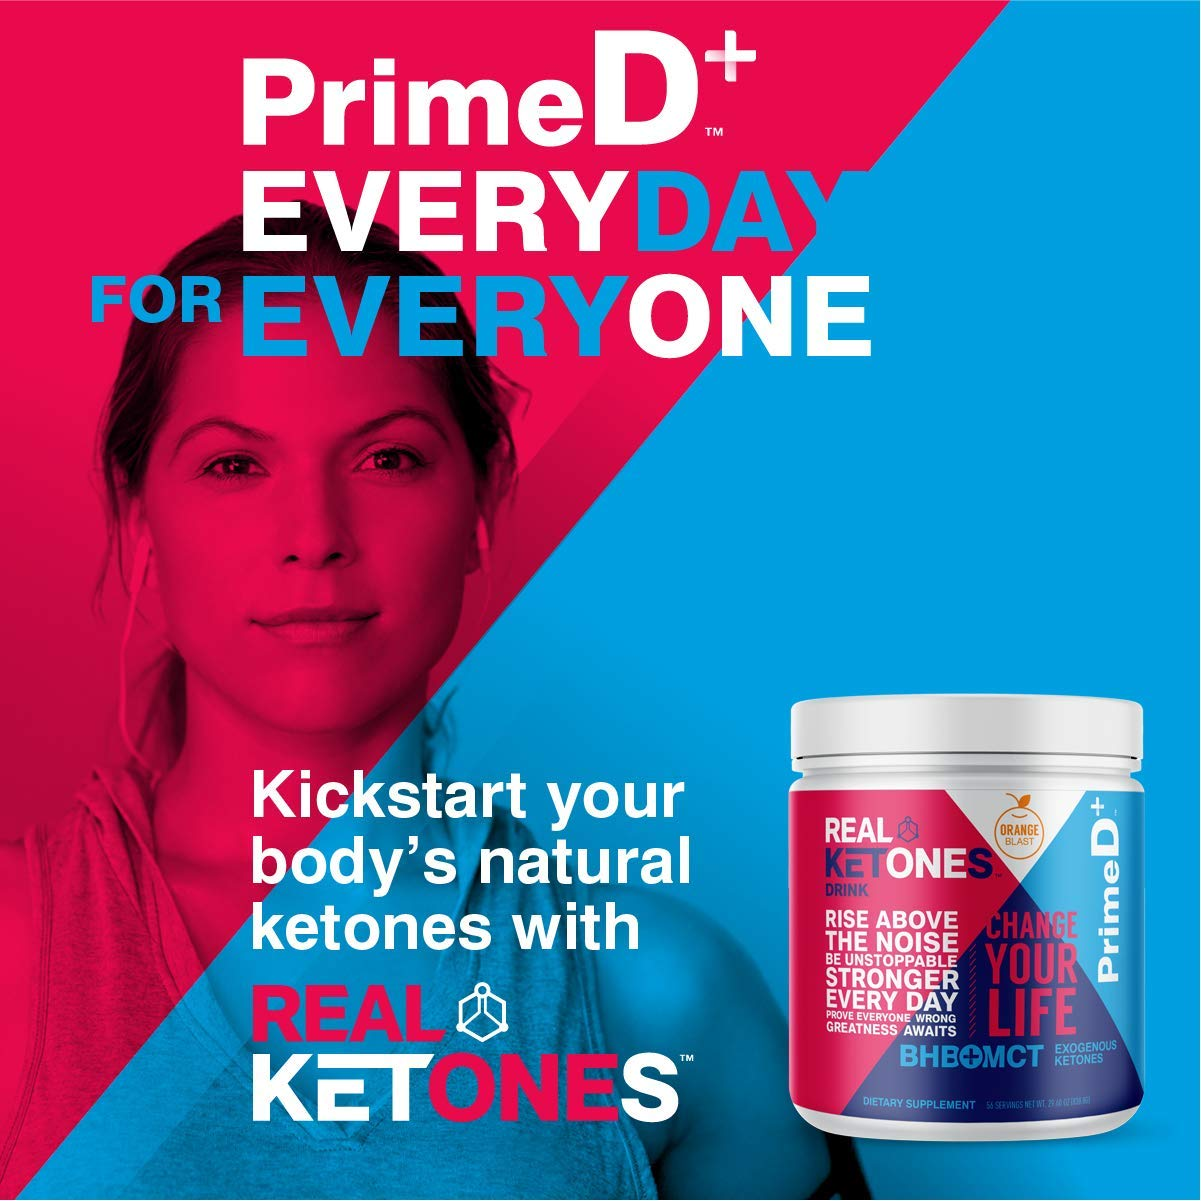 Real Ketones Prime D+ BHB (Beta-Hydroxybuterate) and MCT Exogenous Ketone Powder Supports Ketogenic Diet, Energy Boost, Mental Clarity (Orange Blast) (56 Serving) by KEGENIX (Image #4)